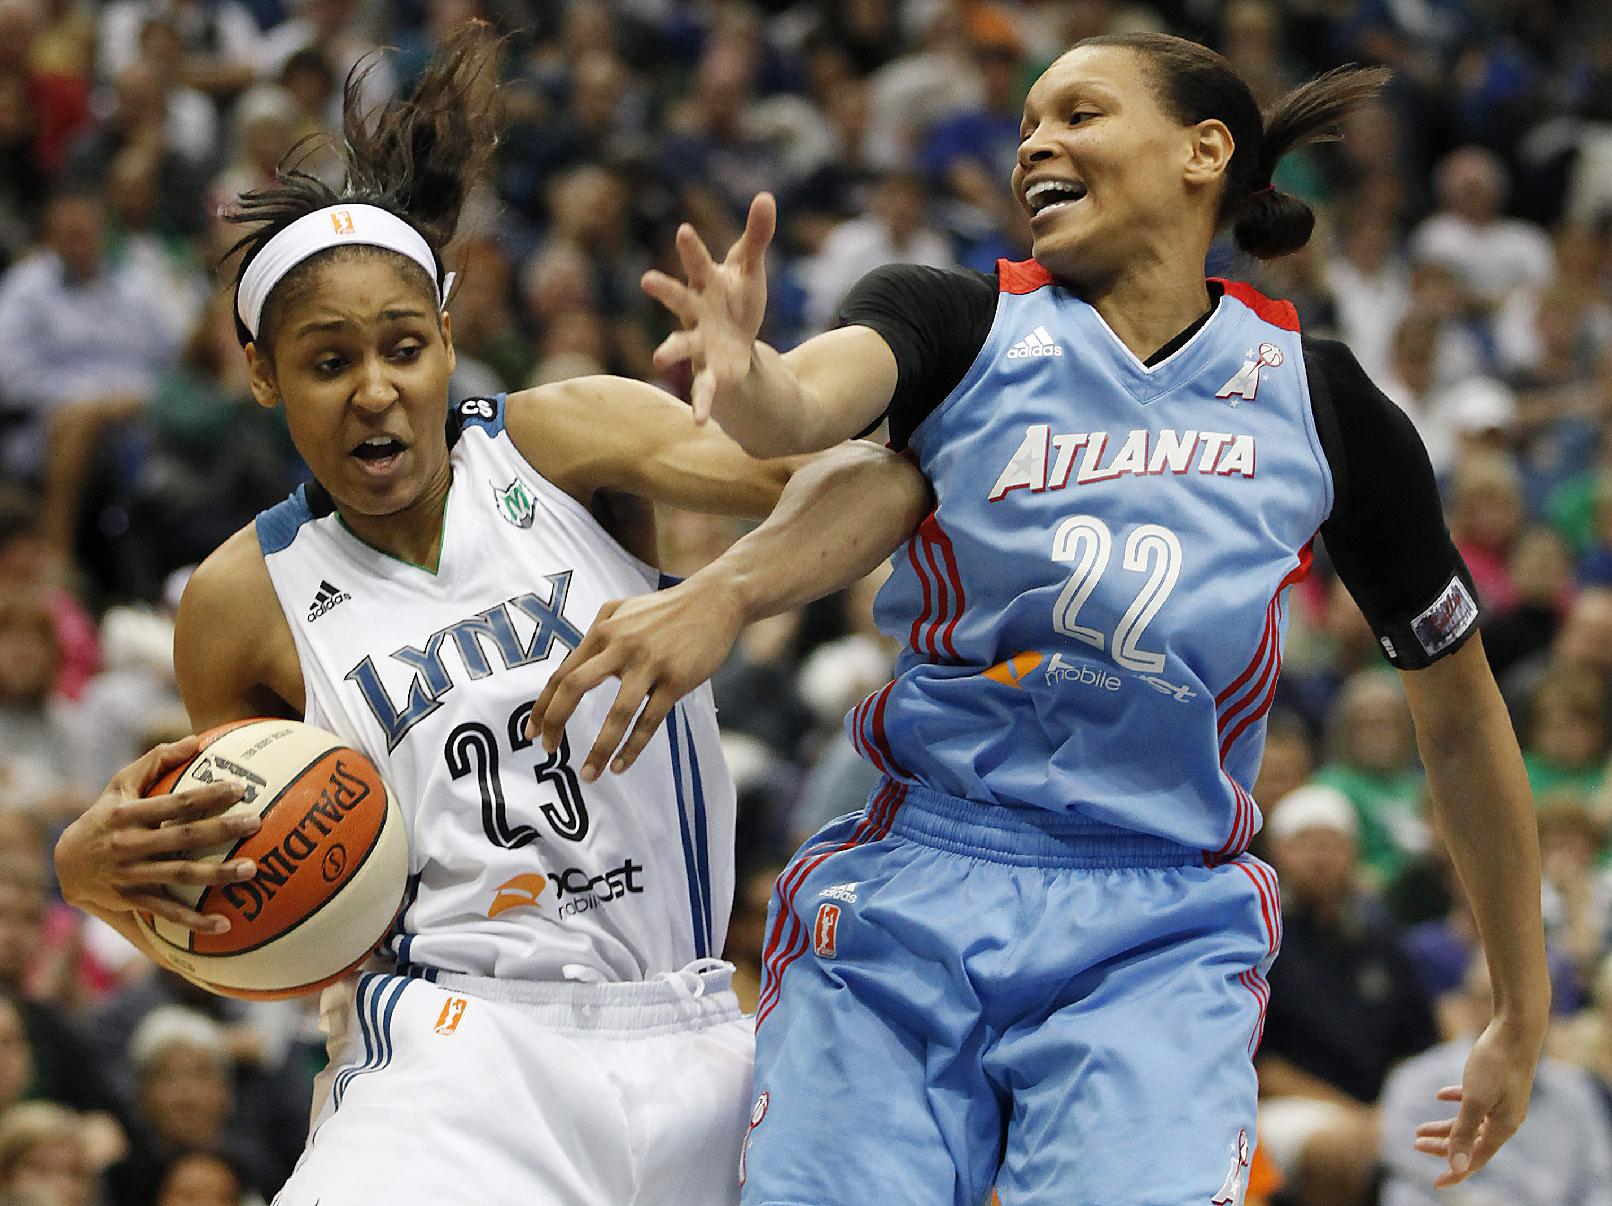 Minnesota Lynx forward Maya Moore (23) protects a rebound ball against Atlanta Dream guard Armintie Herrington (22) during the first half of Game 2 of the WNBA basketball finals, Tuesday, Oct. 8, 2013, in Minneapolis